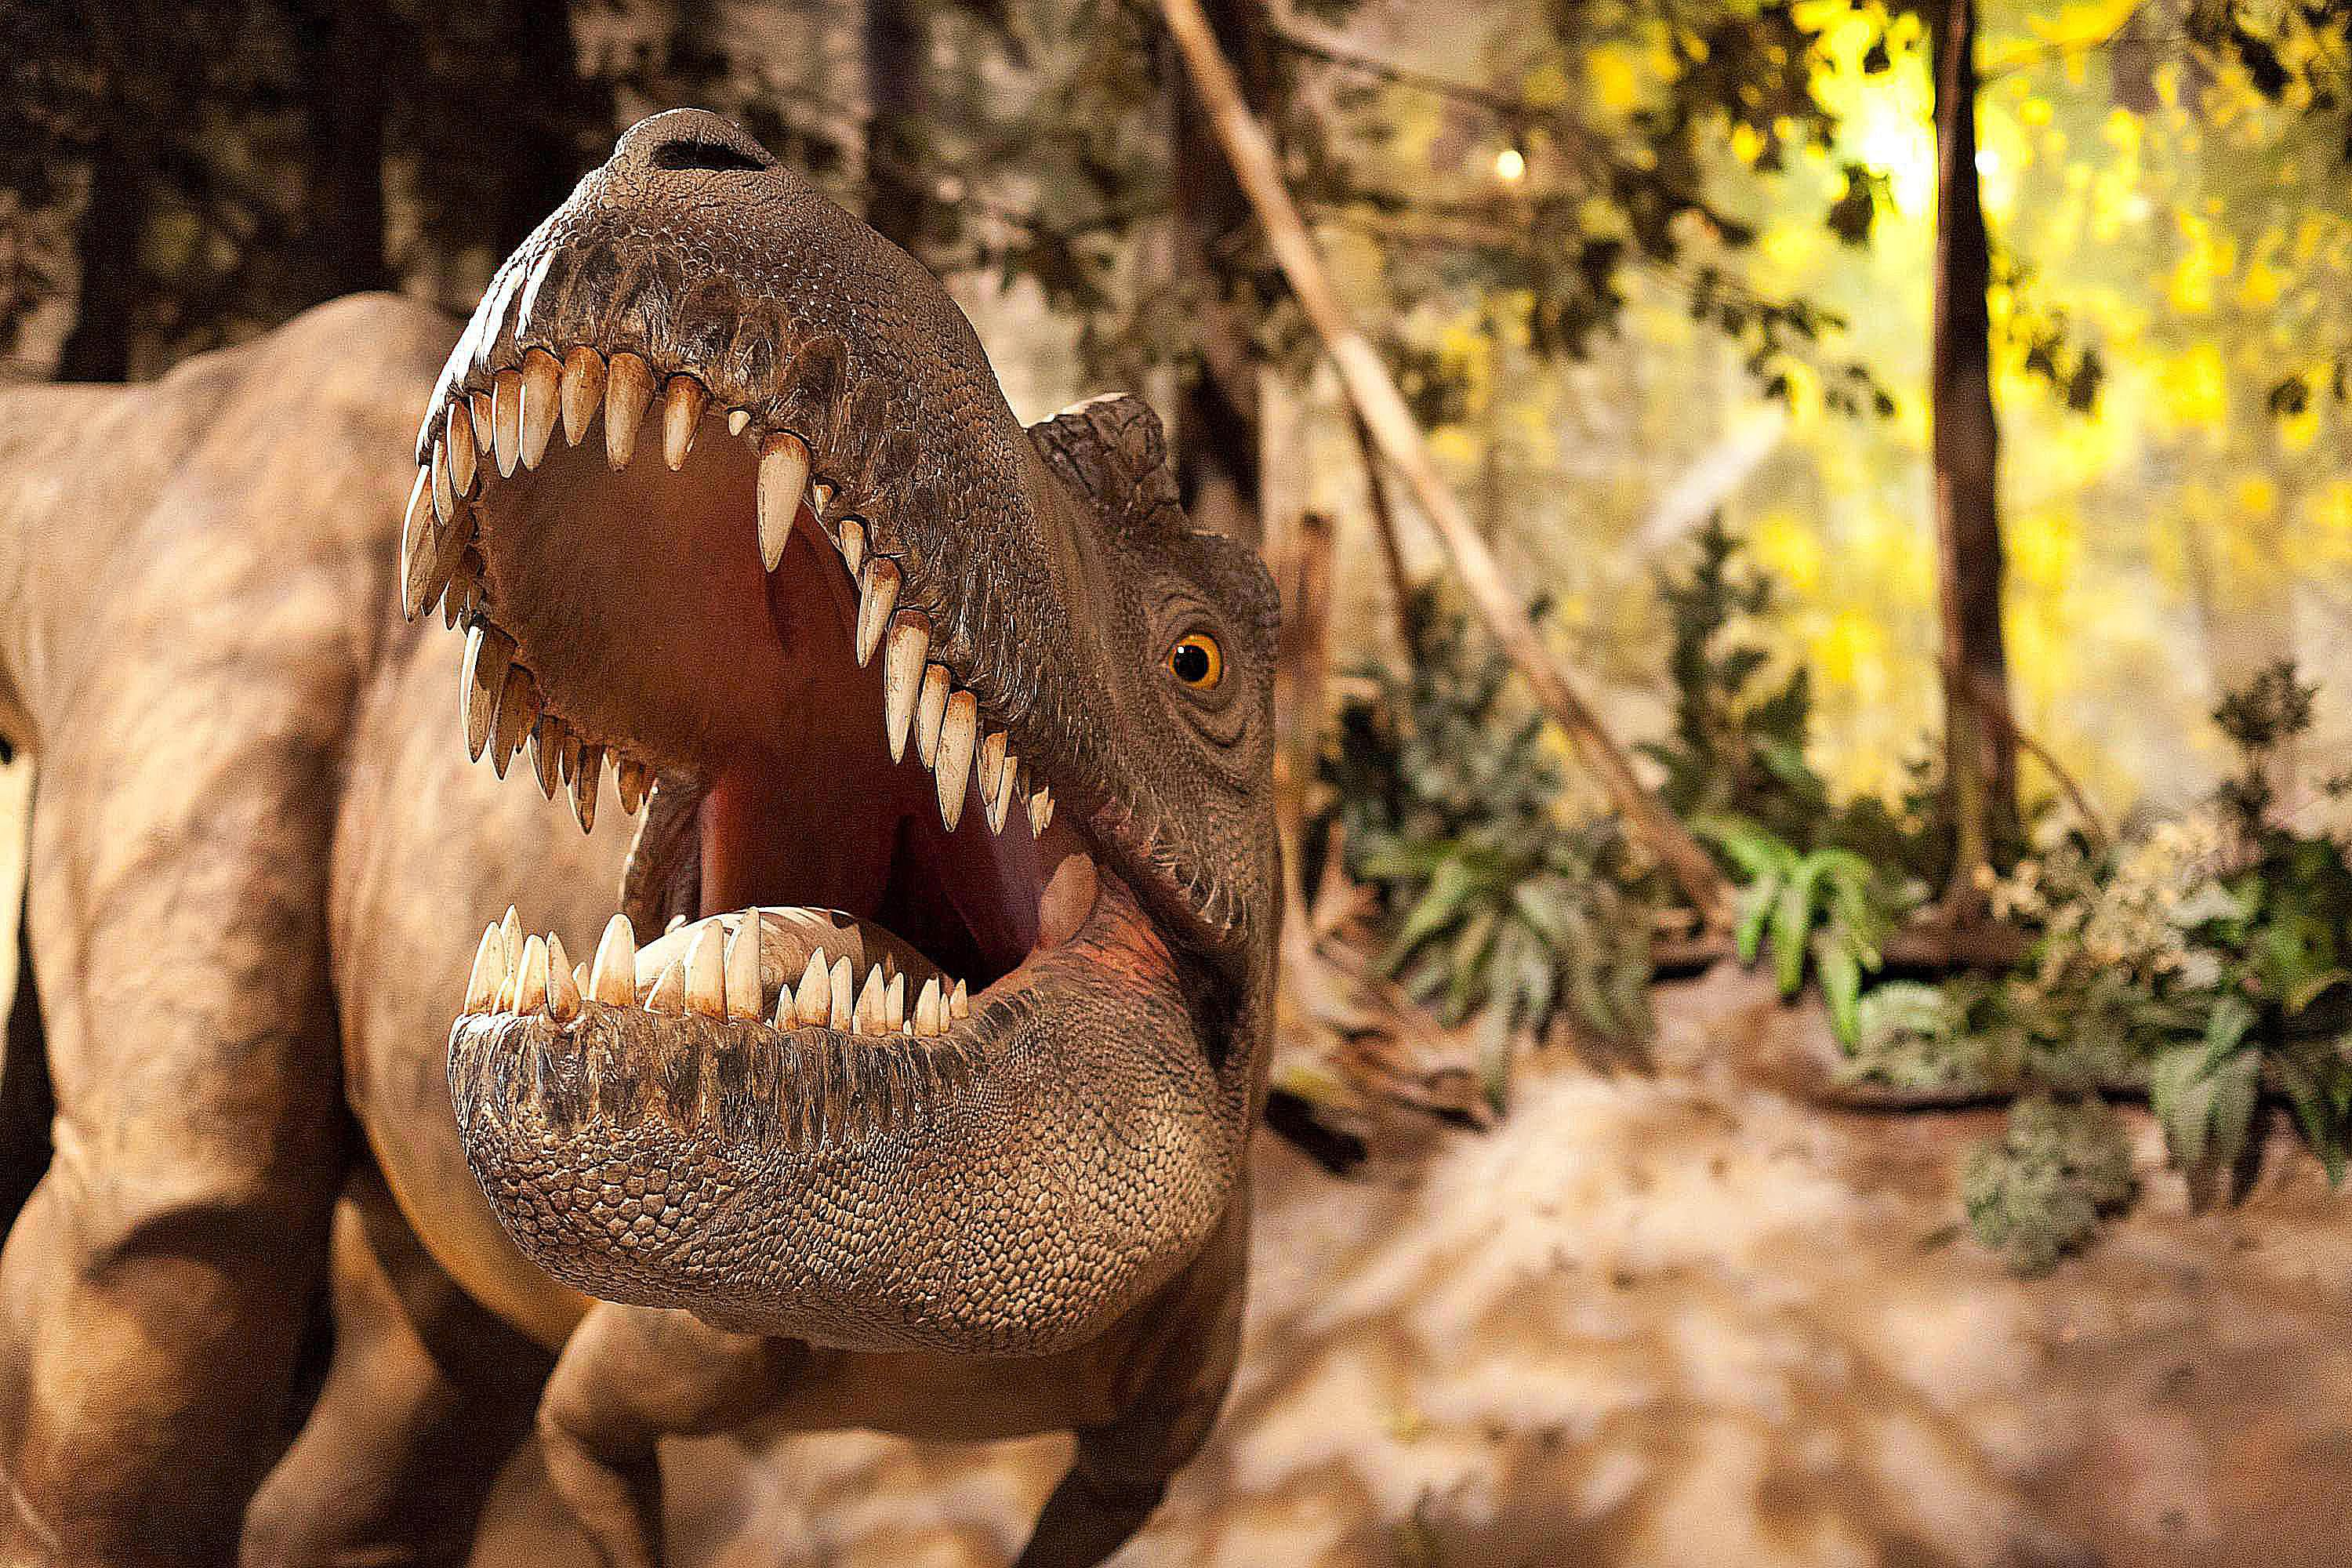 pictures and profiles of tyrannosaur dinosaurs